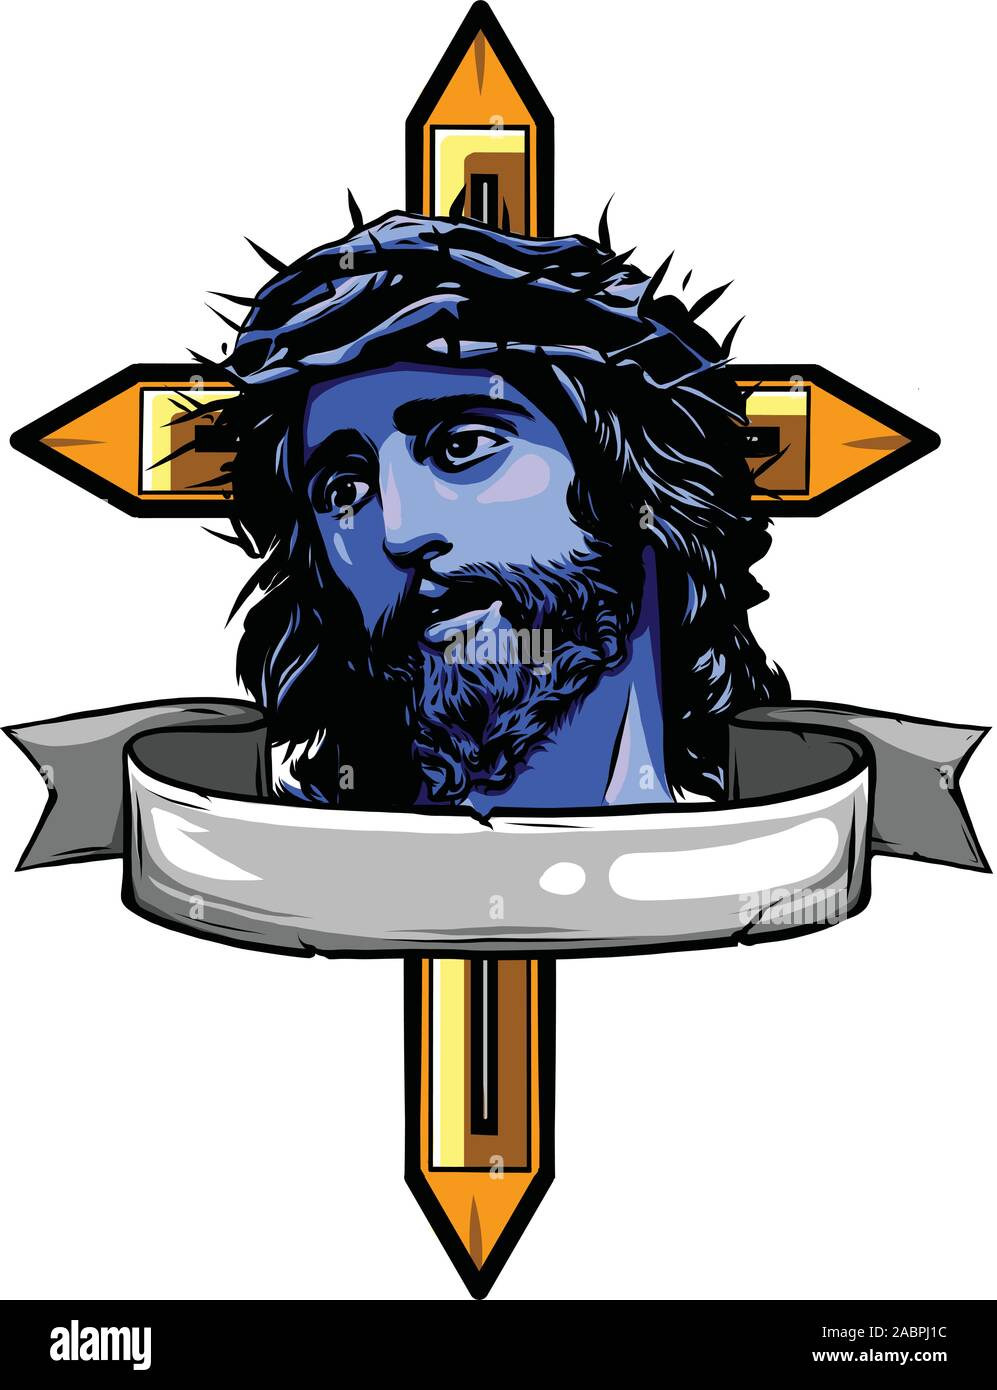 Jesus Crown Cartoon – Jesus christ, the son of god in a crown of thorns on his head, a symbol of christianity hand drawn vector illustration.